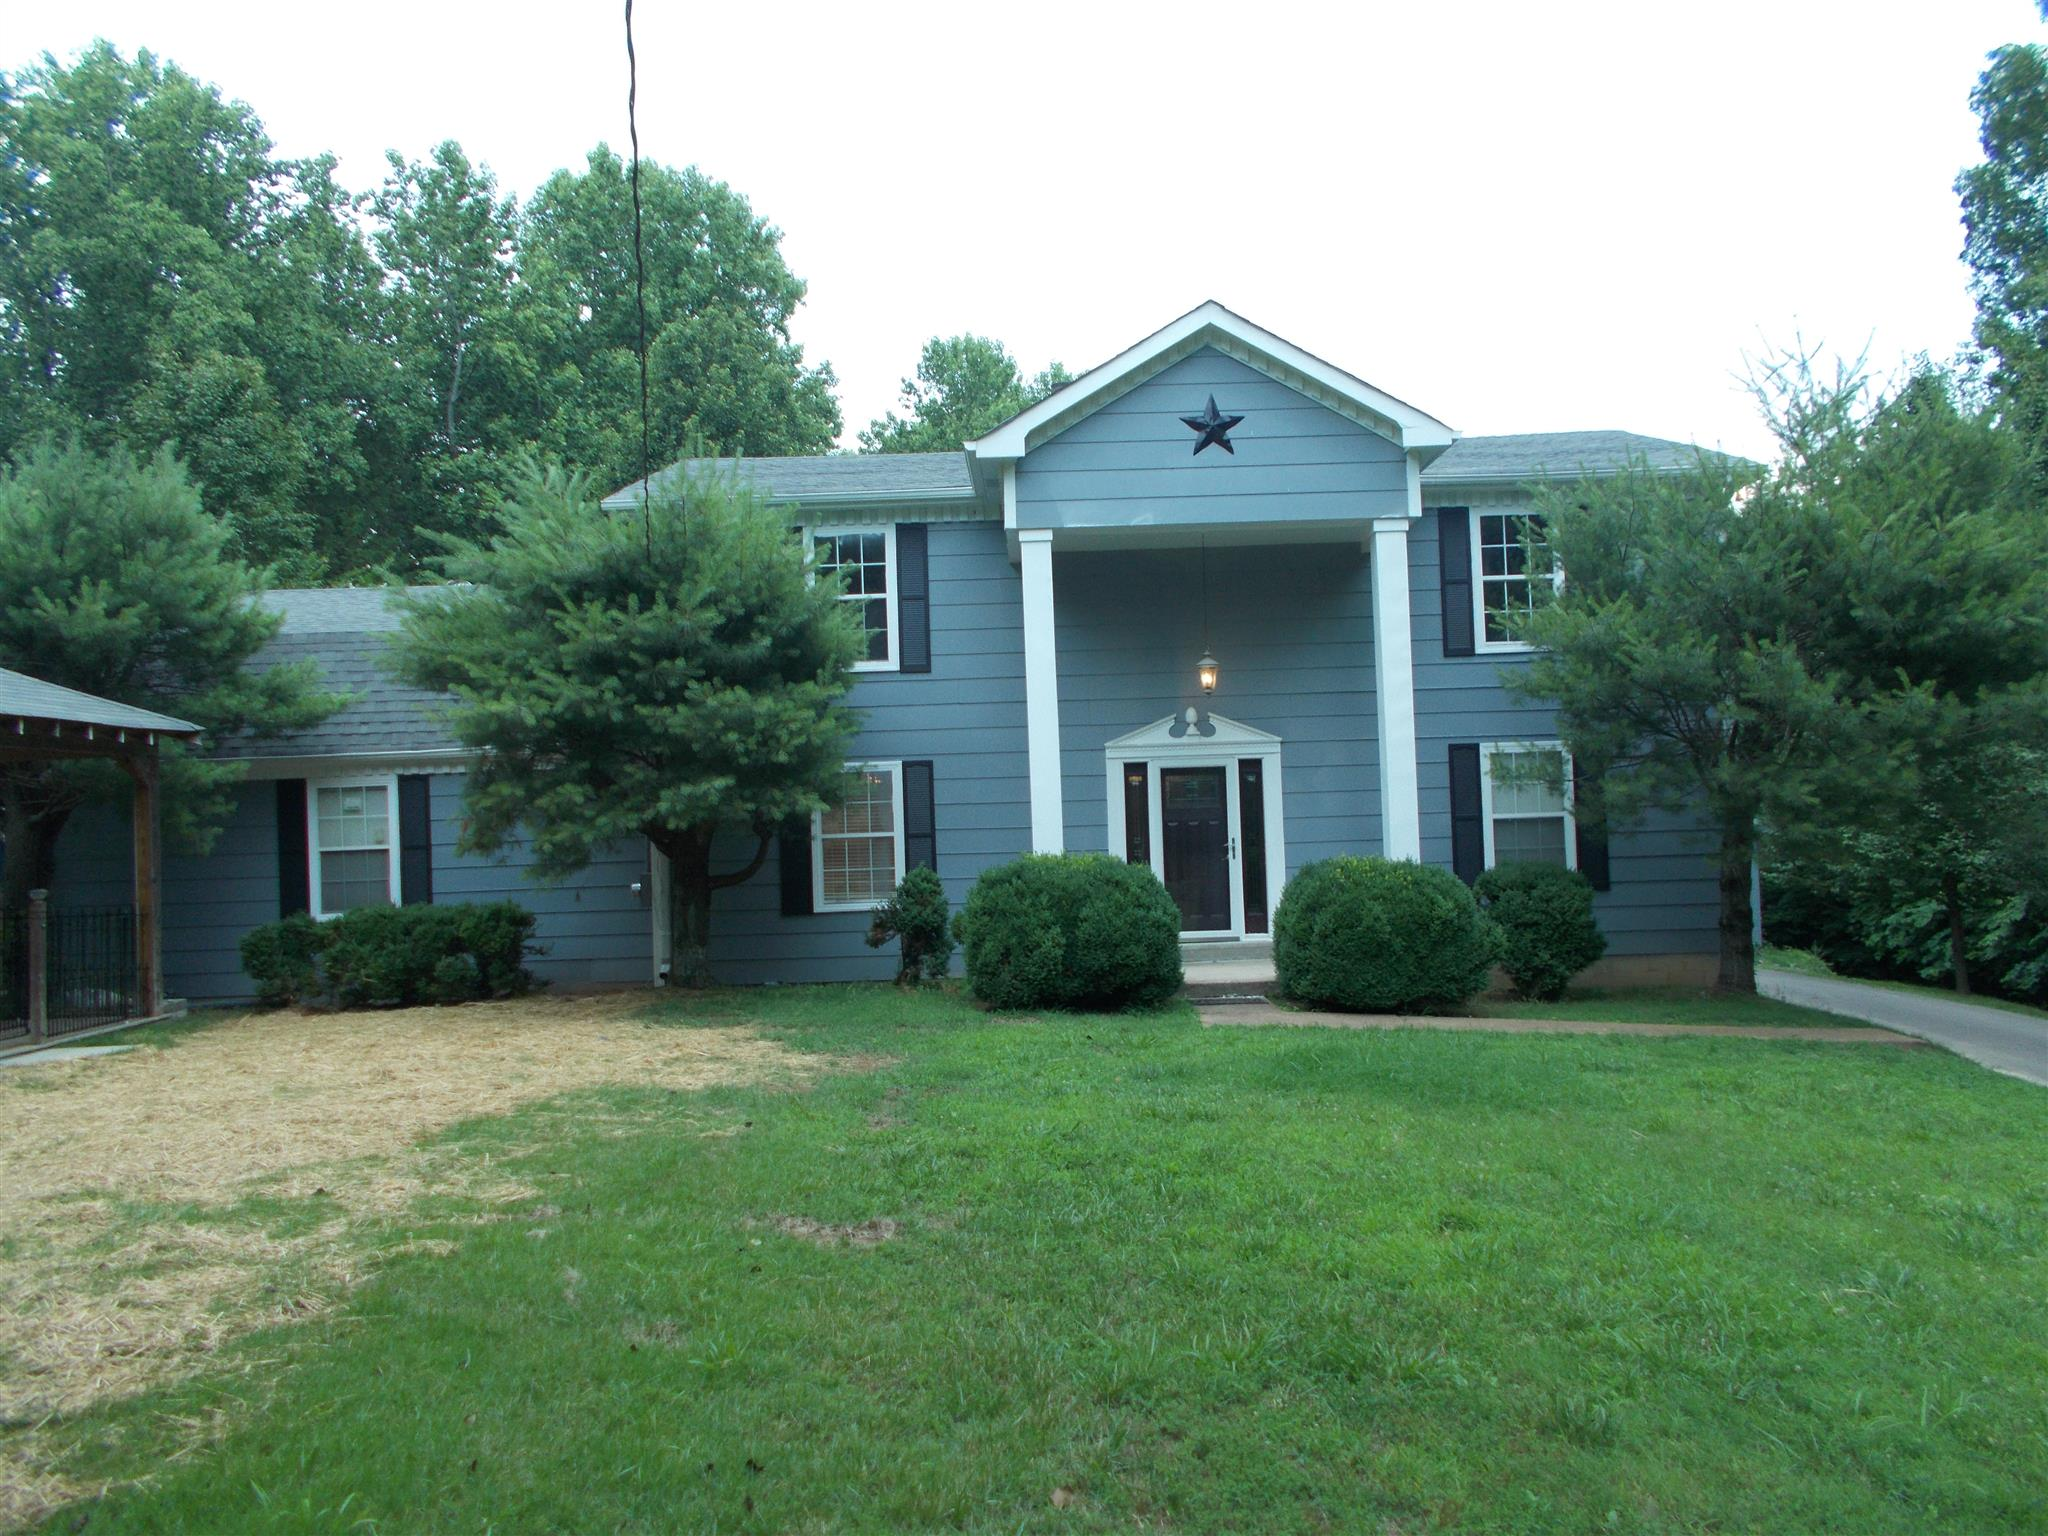 2948 Claylick Rd, Whites Creek, TN 37189 - Whites Creek, TN real estate listing